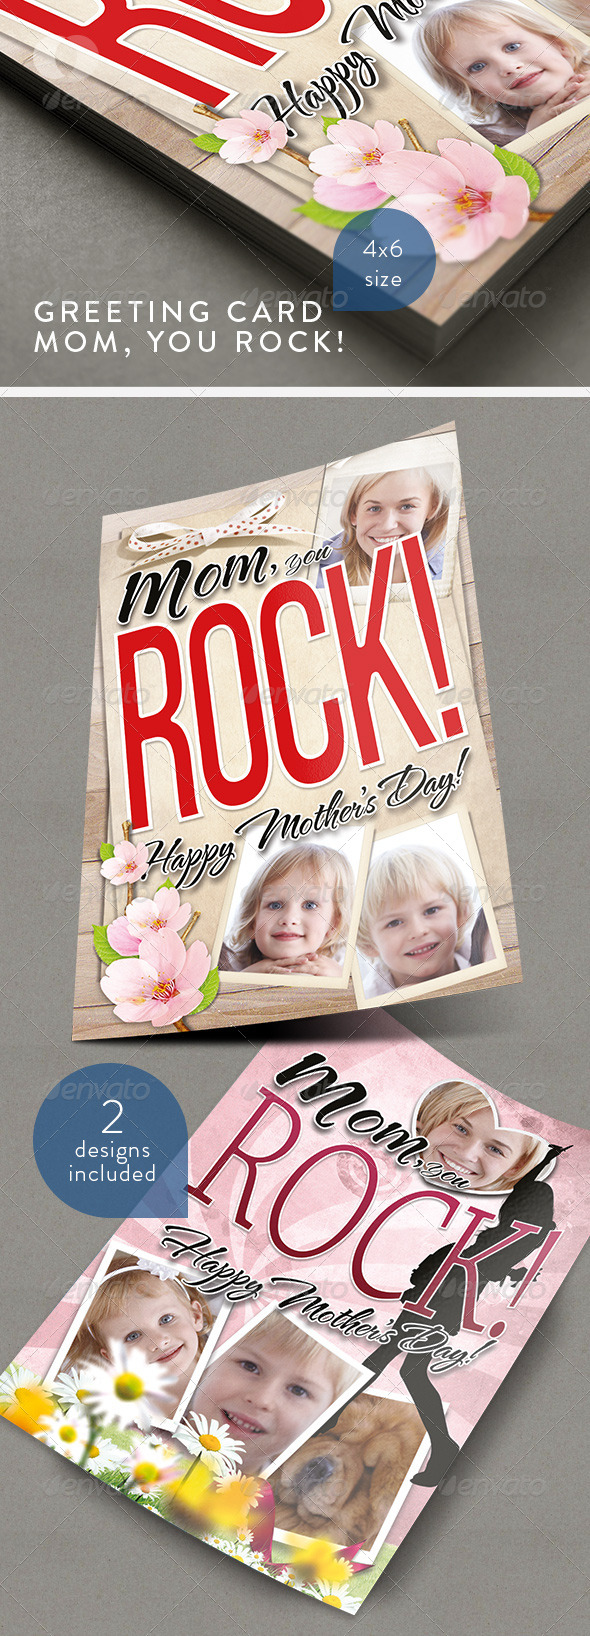 Greeting Card - Mom you Rock! - Greeting Cards Cards & Invites